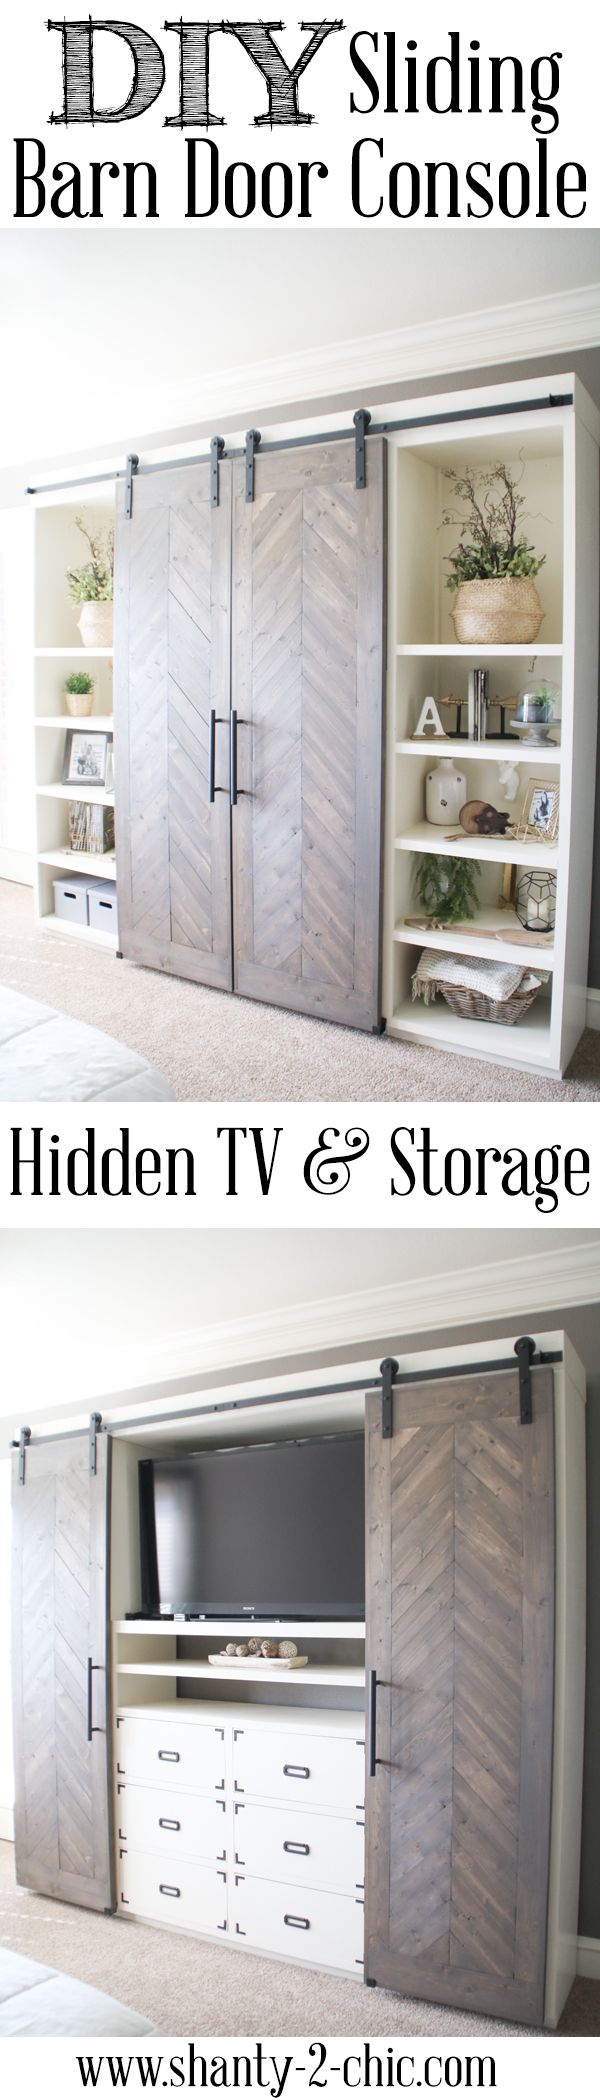 Build This Sliding Barn Door Console It S Perfect For Any Room Hide Your Tv And Add Tons Of Storage Free Plans Tutorial At Www Shanty 2 Chic